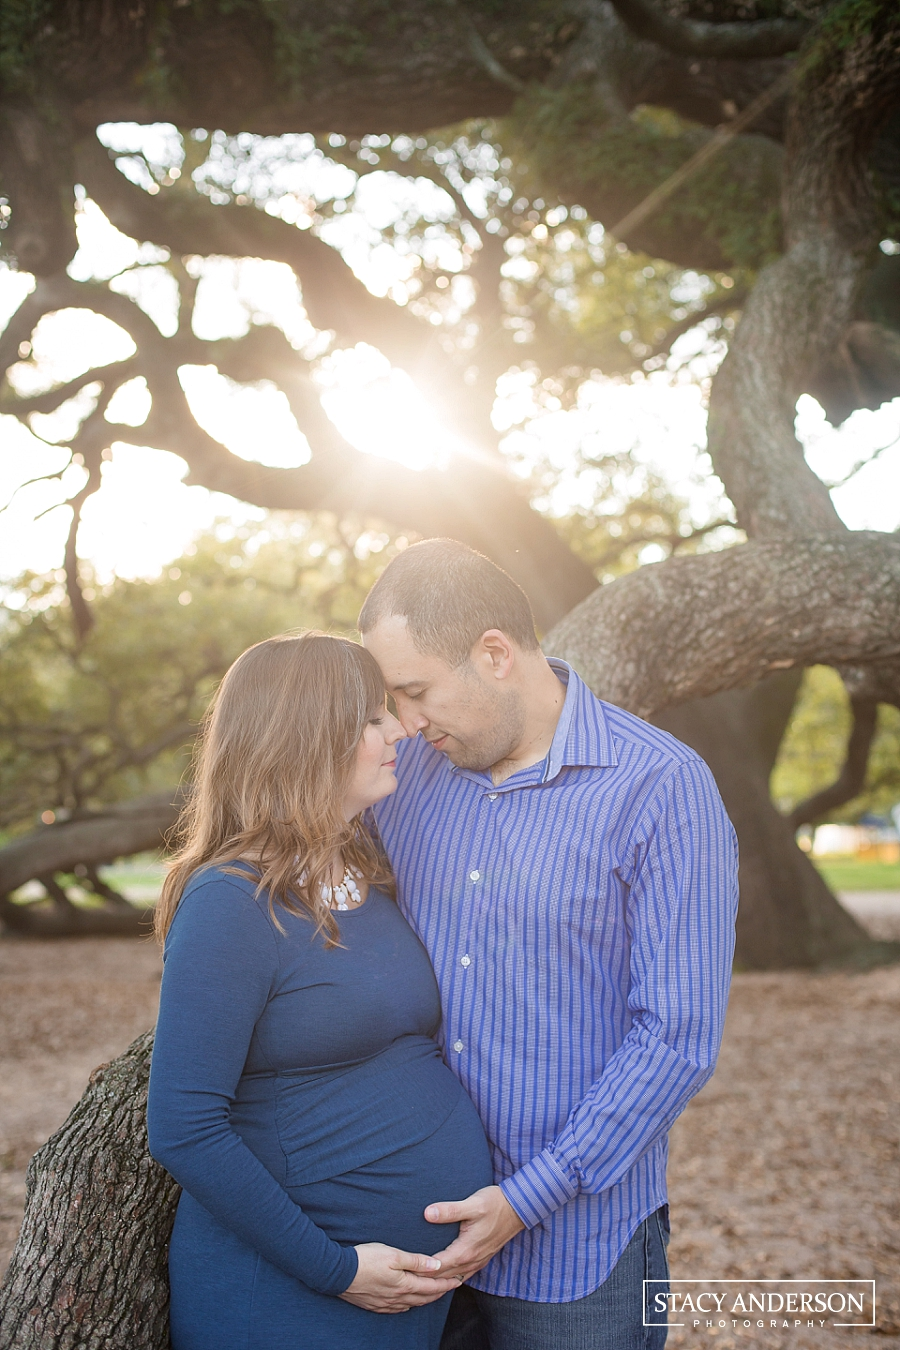 Stacy Anderson Photography Houston Maternity Photographer_1183